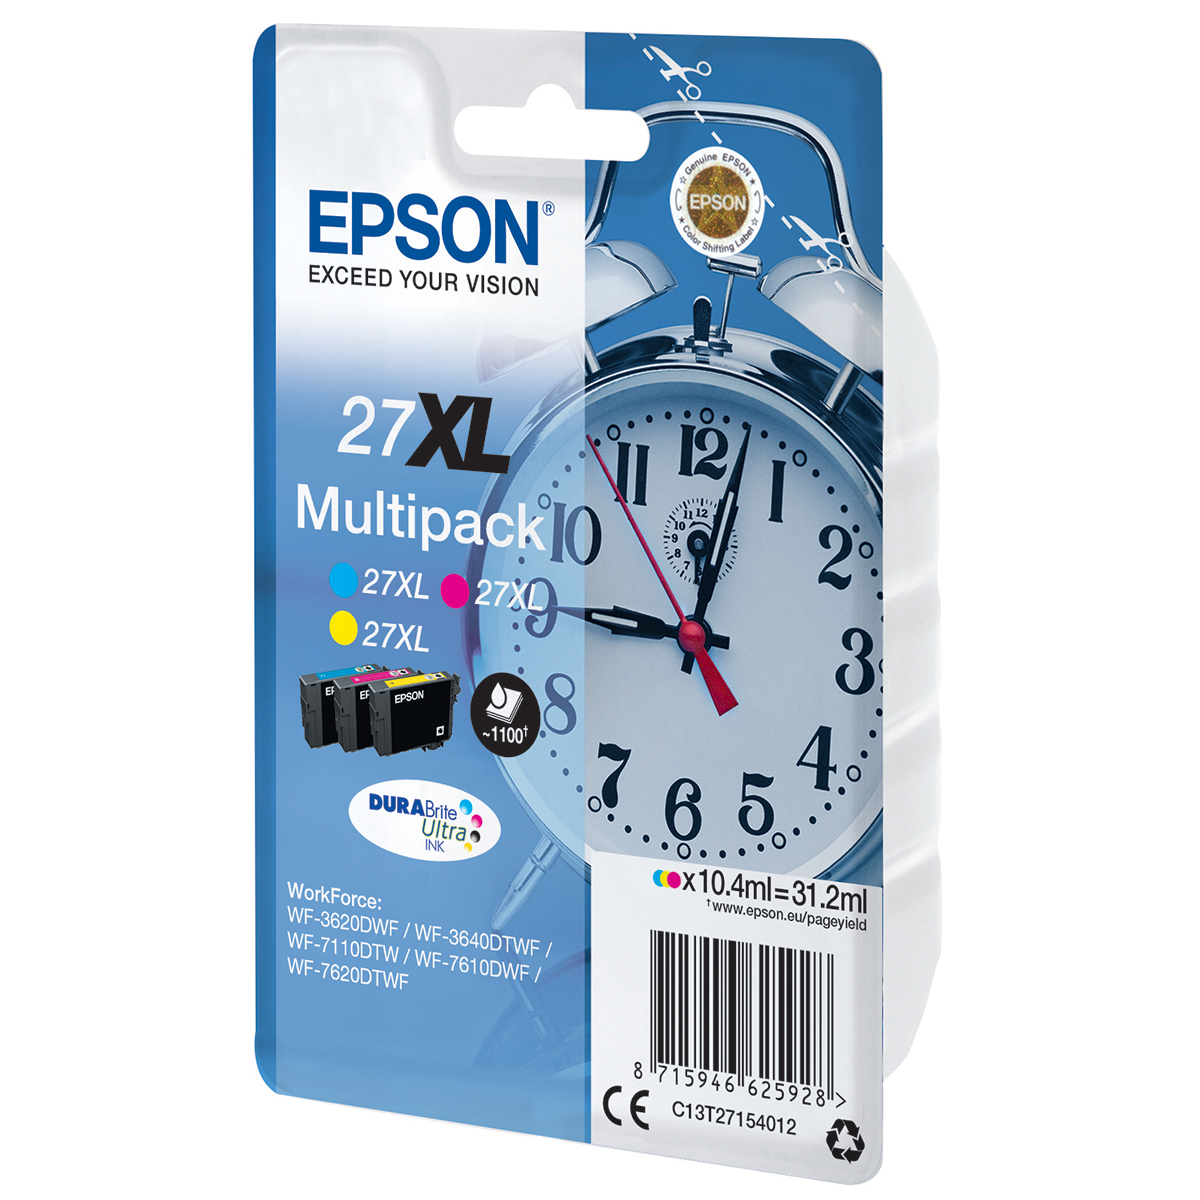 Epson 27XL Multipack 3 Ink Durabrite Ultra Cartridges